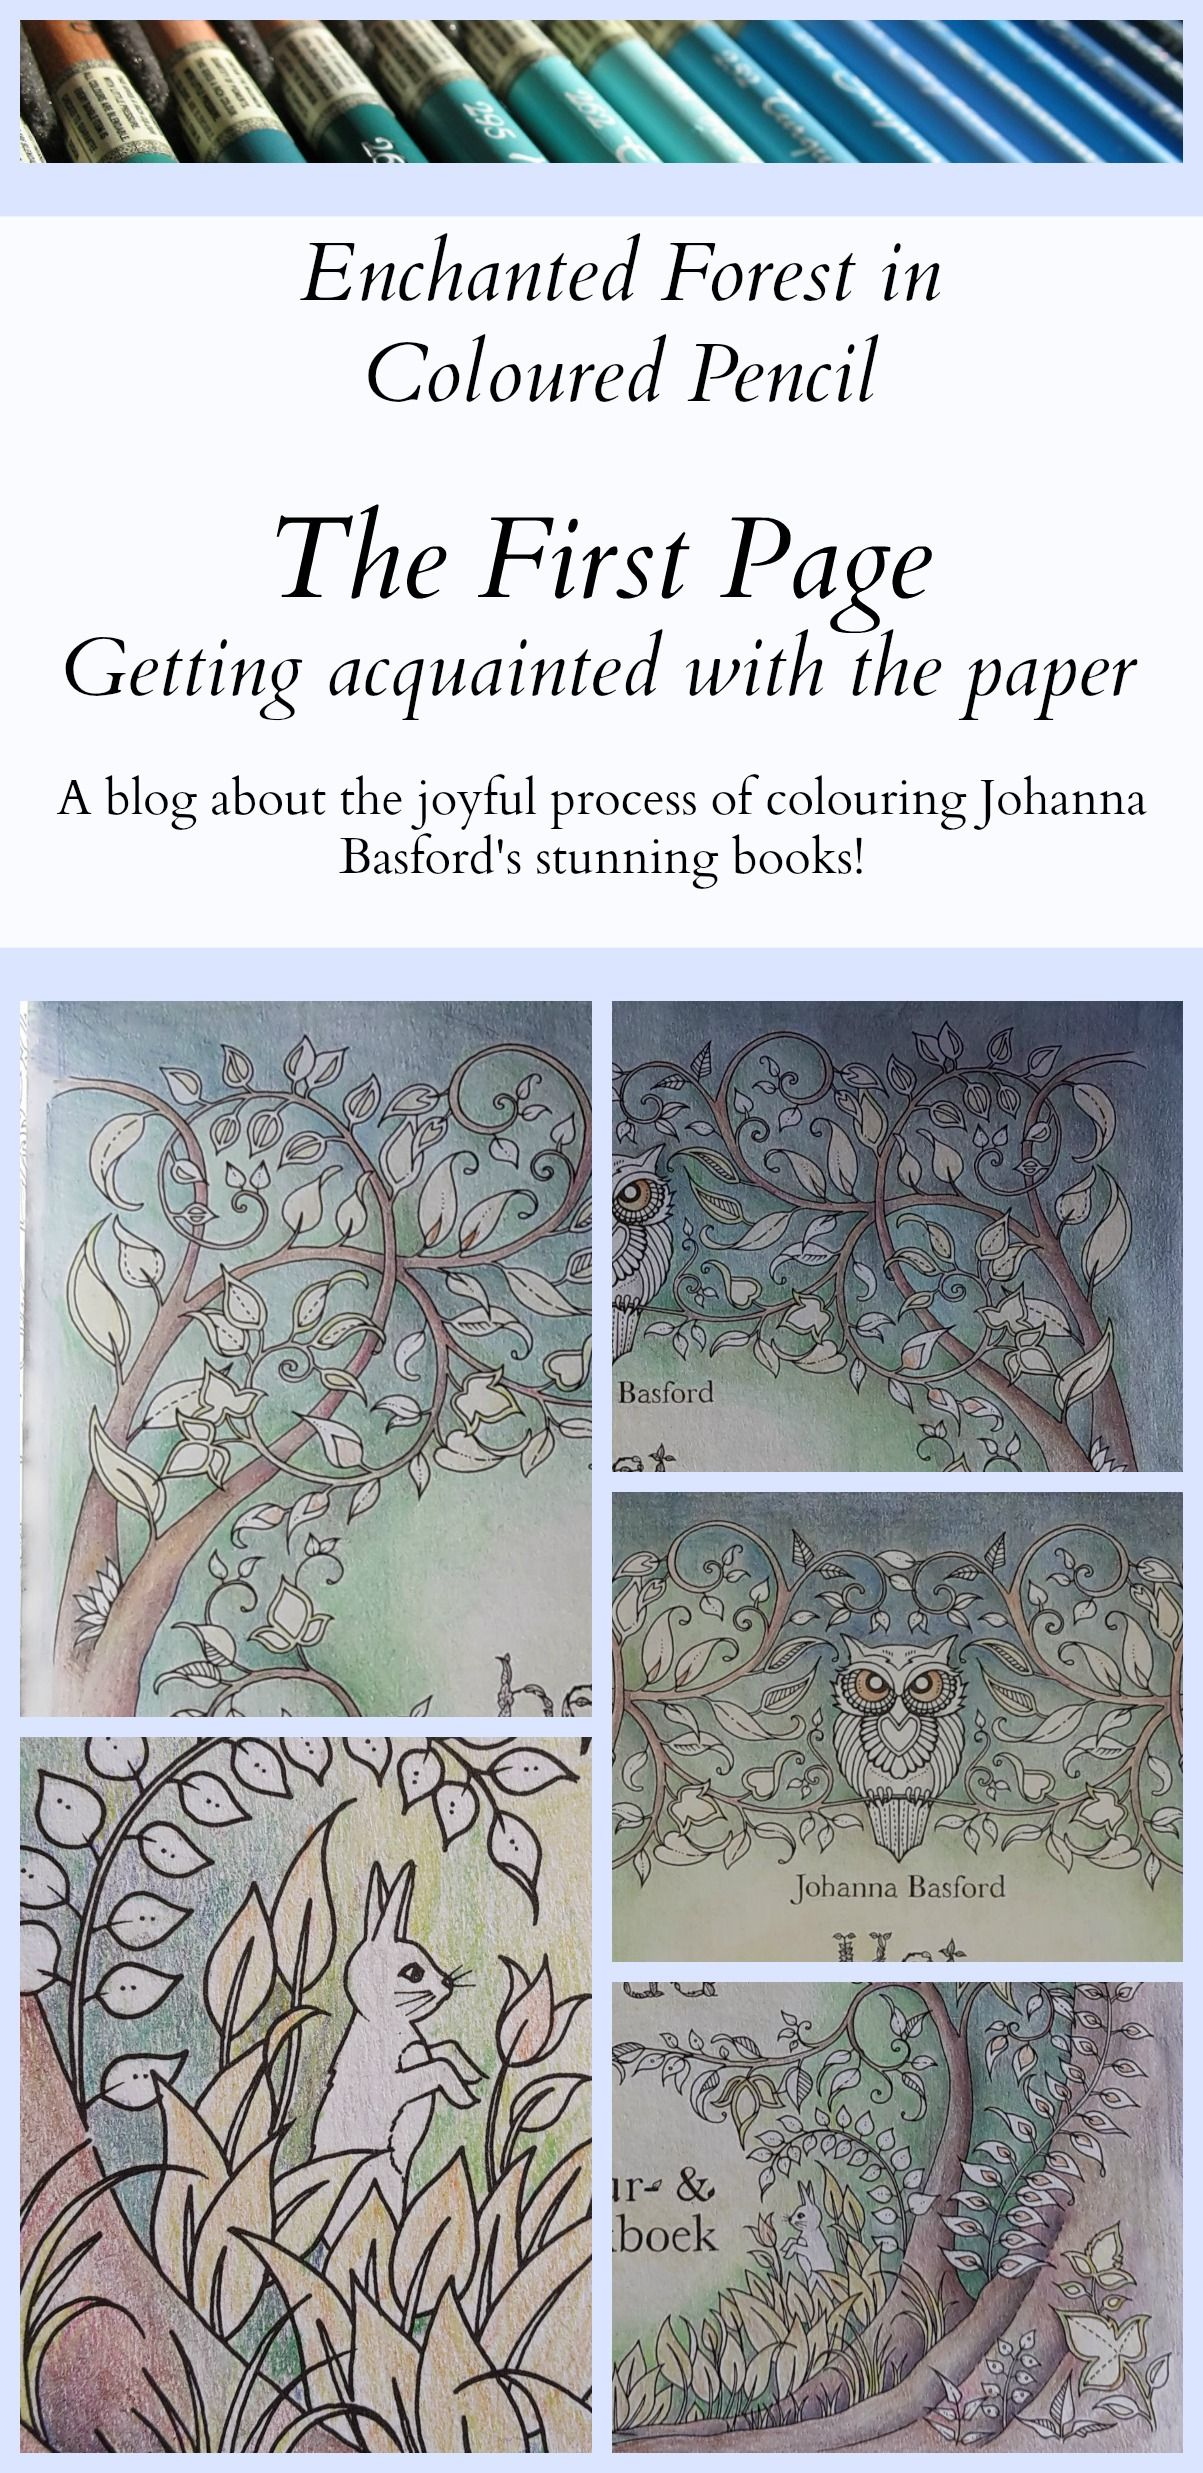 I Recently Started To Colour The First Page In Johanna Basfords Colouring Book Enchanted Forest Coloured During A Trip UK And Had Great Time